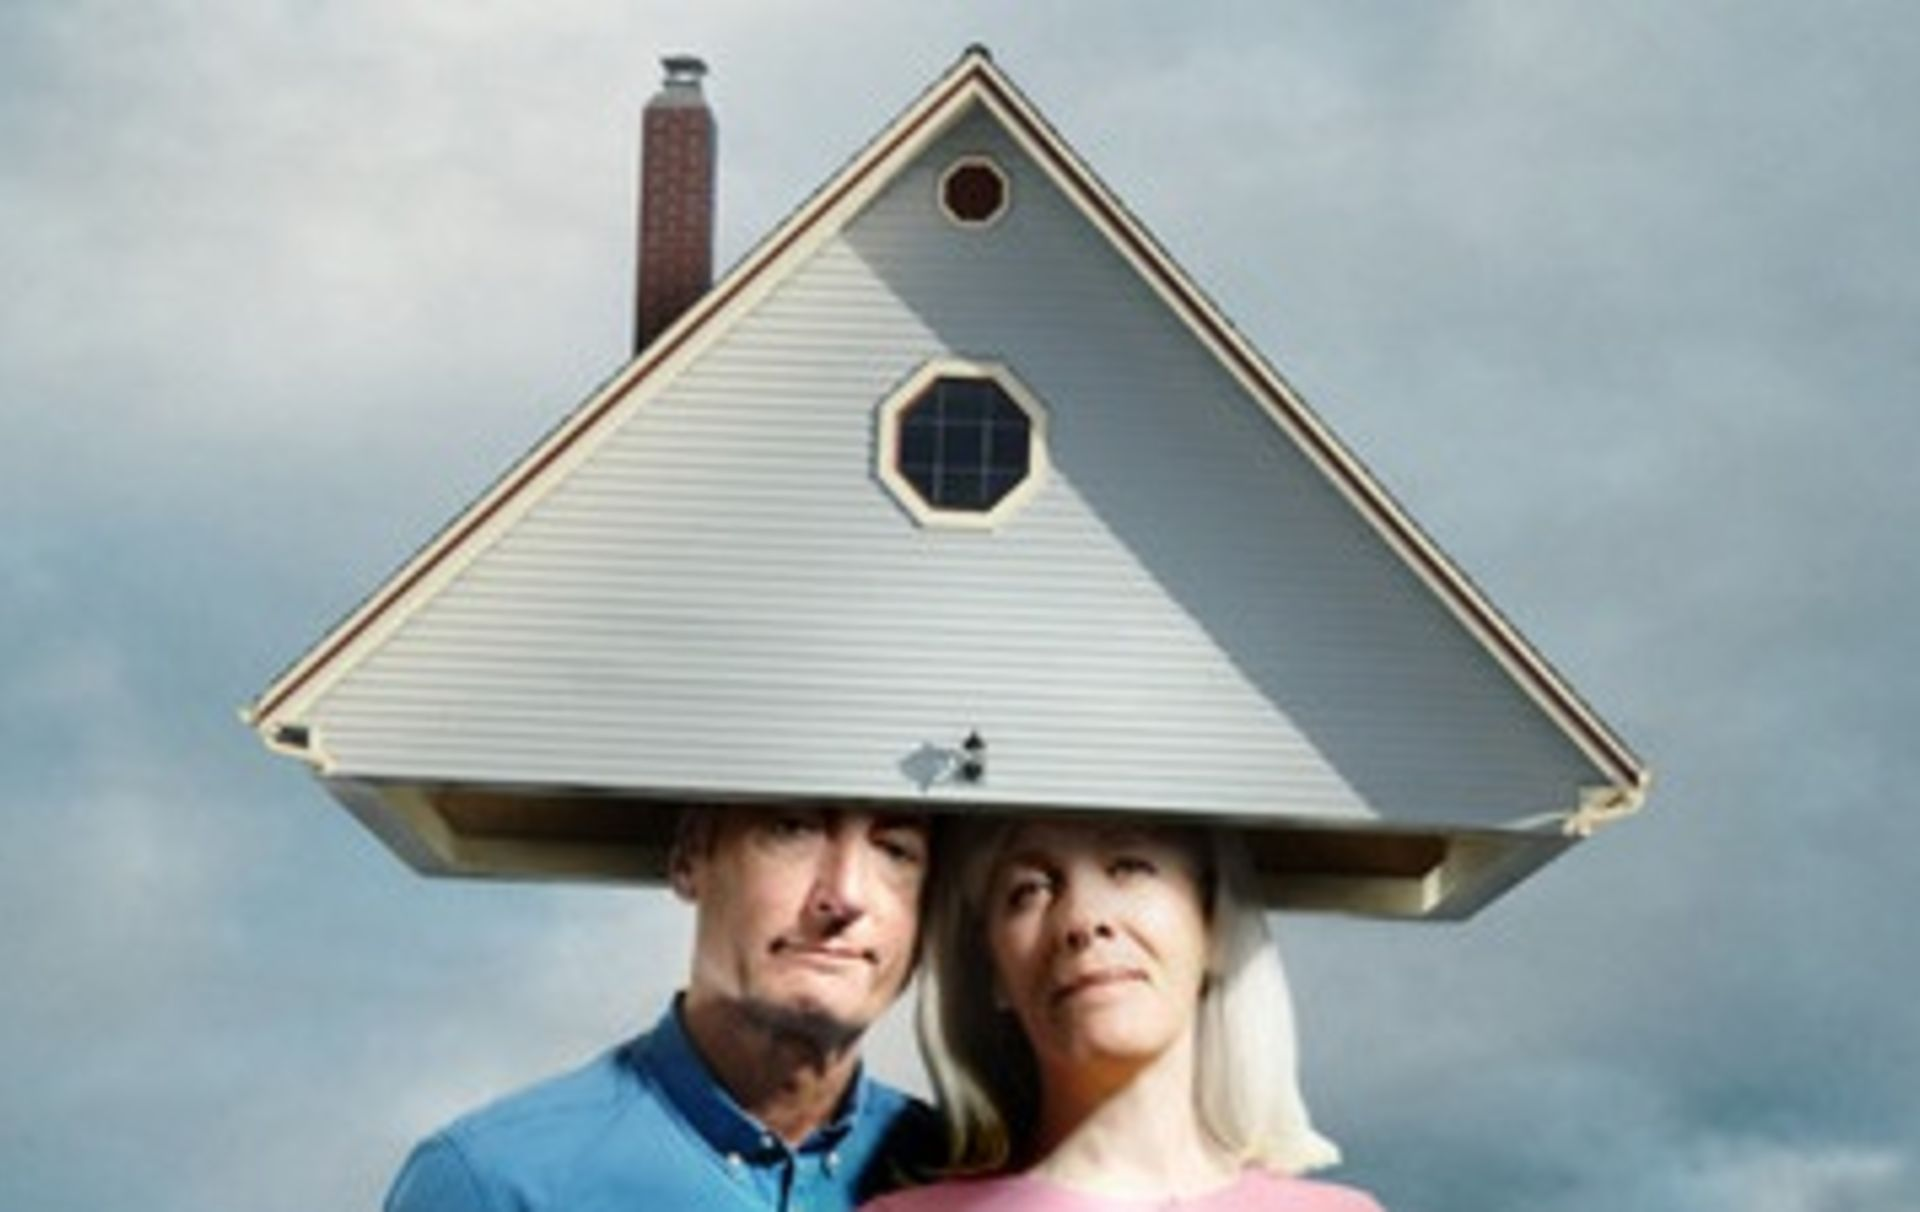 The Downsizing Challenge, Part 1: Get Your Head in the Game